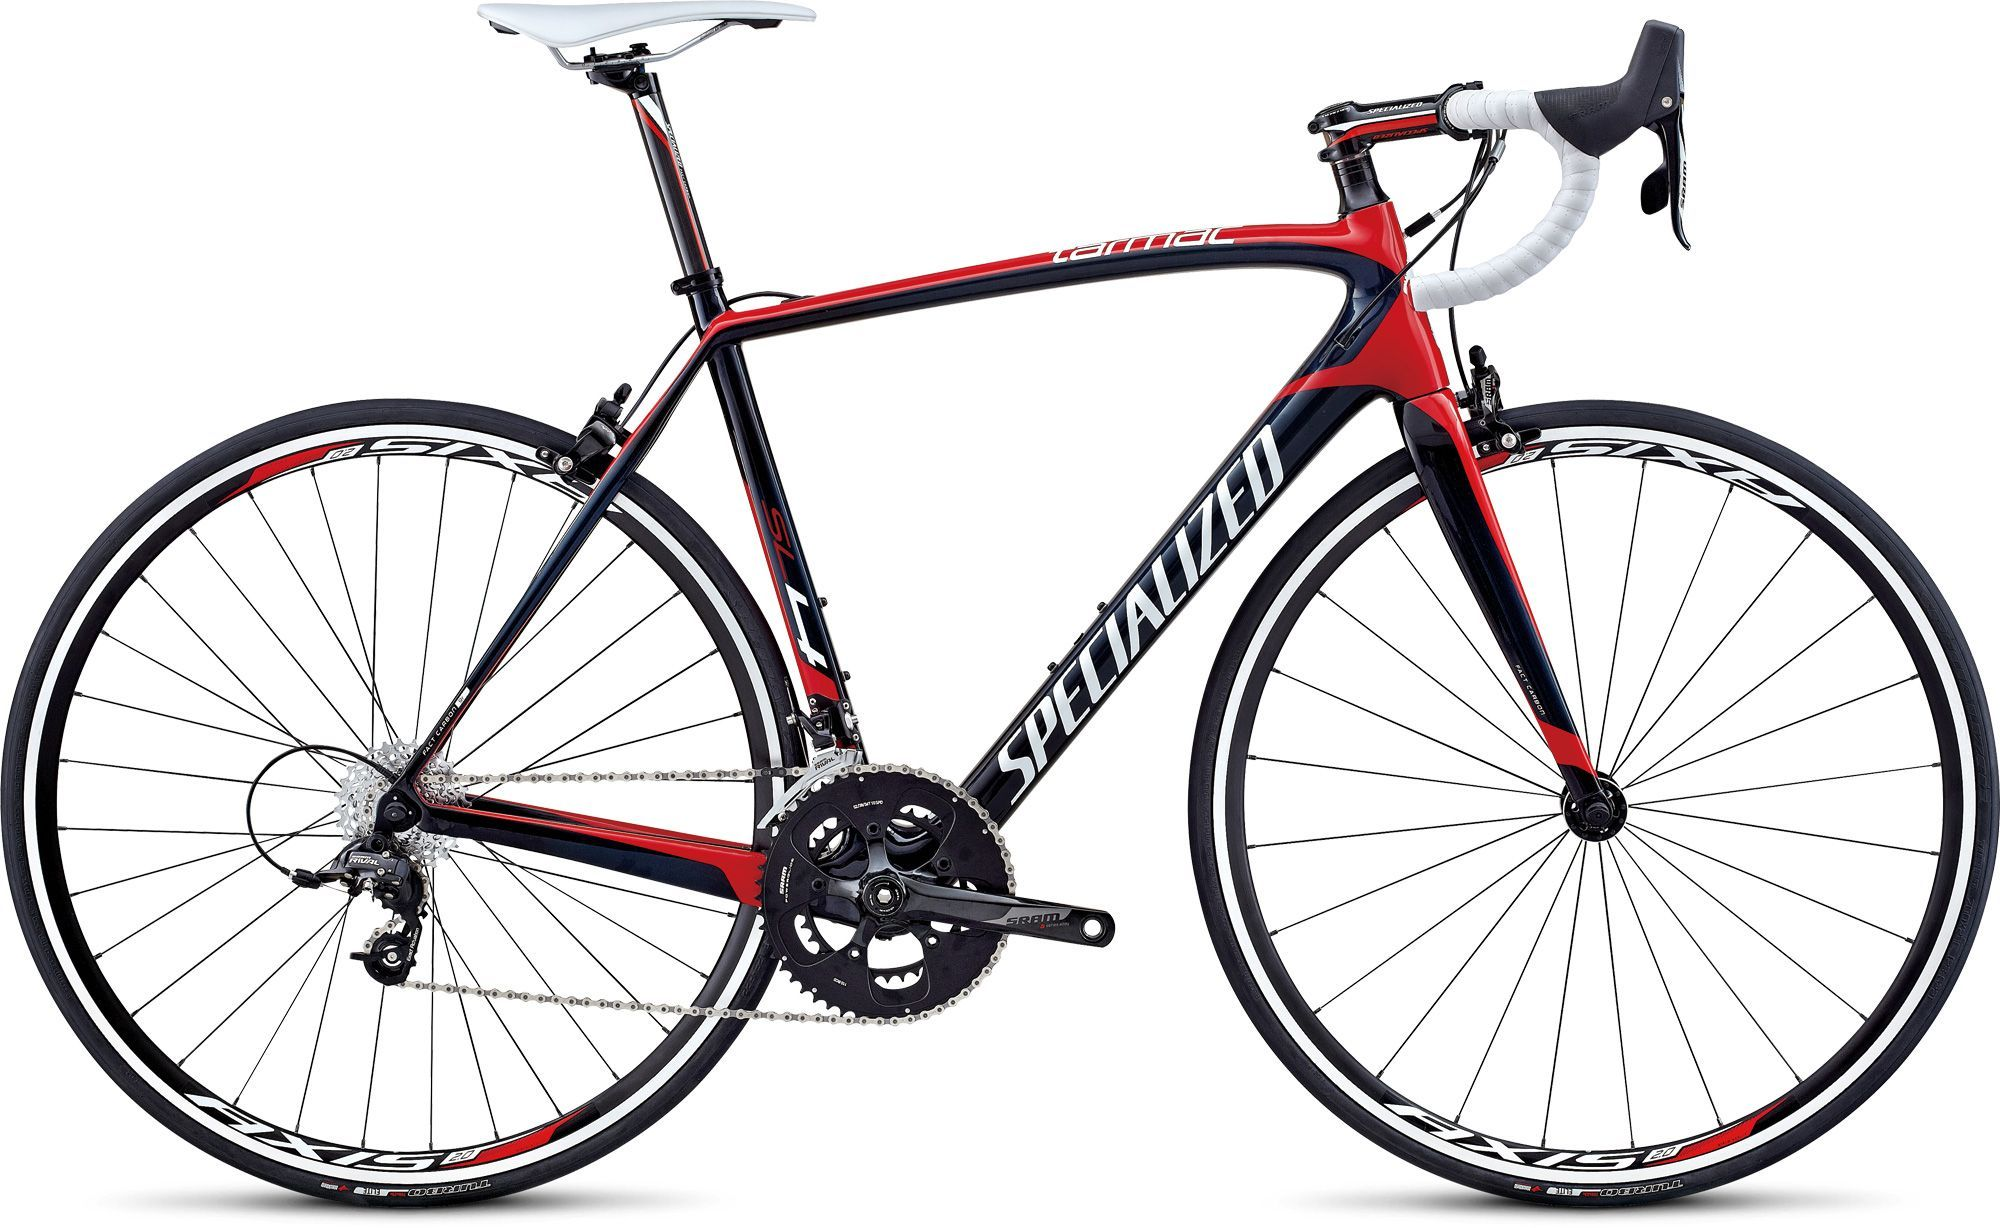 Where To Look For A Cheap Road Bike Trek Bikes Kona Bikes Road Bikes